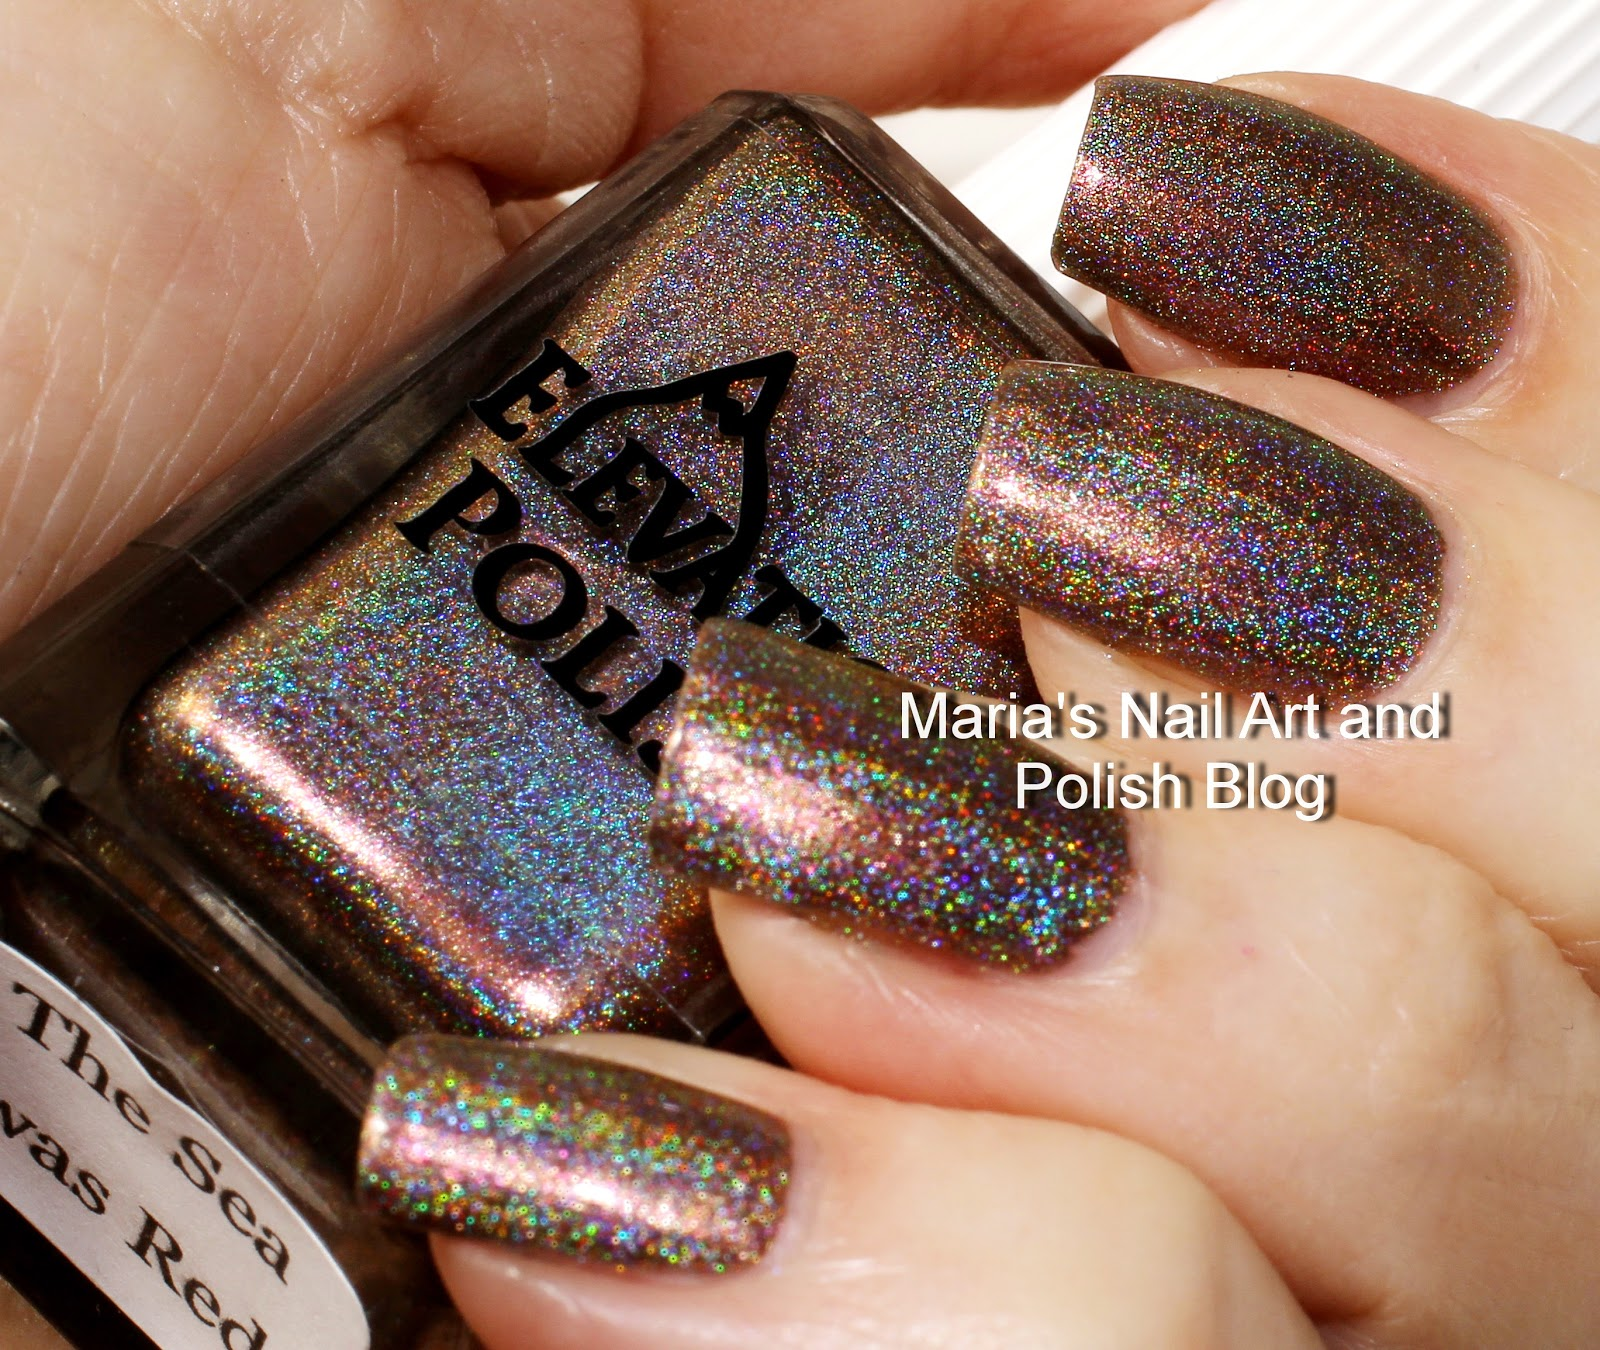 Marias Nail Art And Polish Blog Flushed With Stripes And: Marias Nail Art And Polish Blog: Elevation Polish Quarter